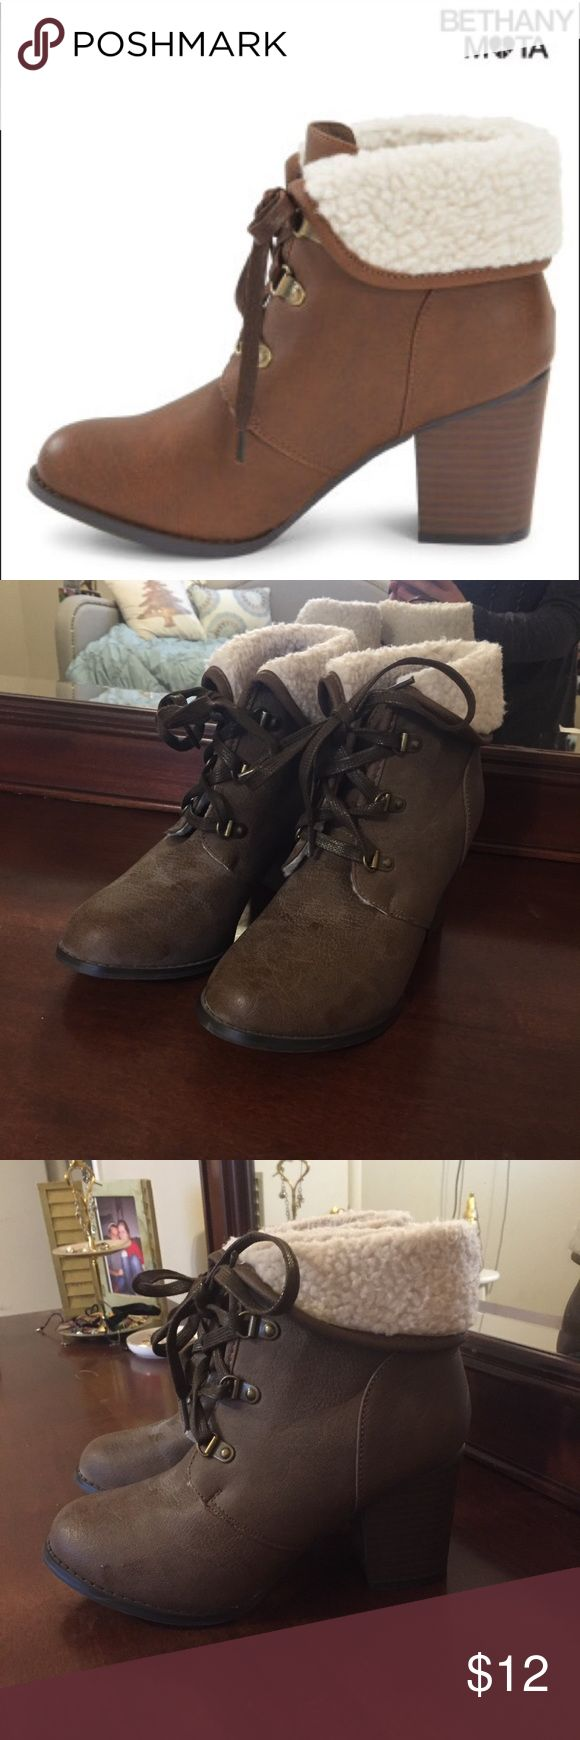 Bethany Mota Boots Same color as first picture, it's just dark in my room. Worn about 3 times they were just a little big on me. No flaws just dust on them from being in the top of my closet Aeropostale Shoes Ankle Boots & Booties